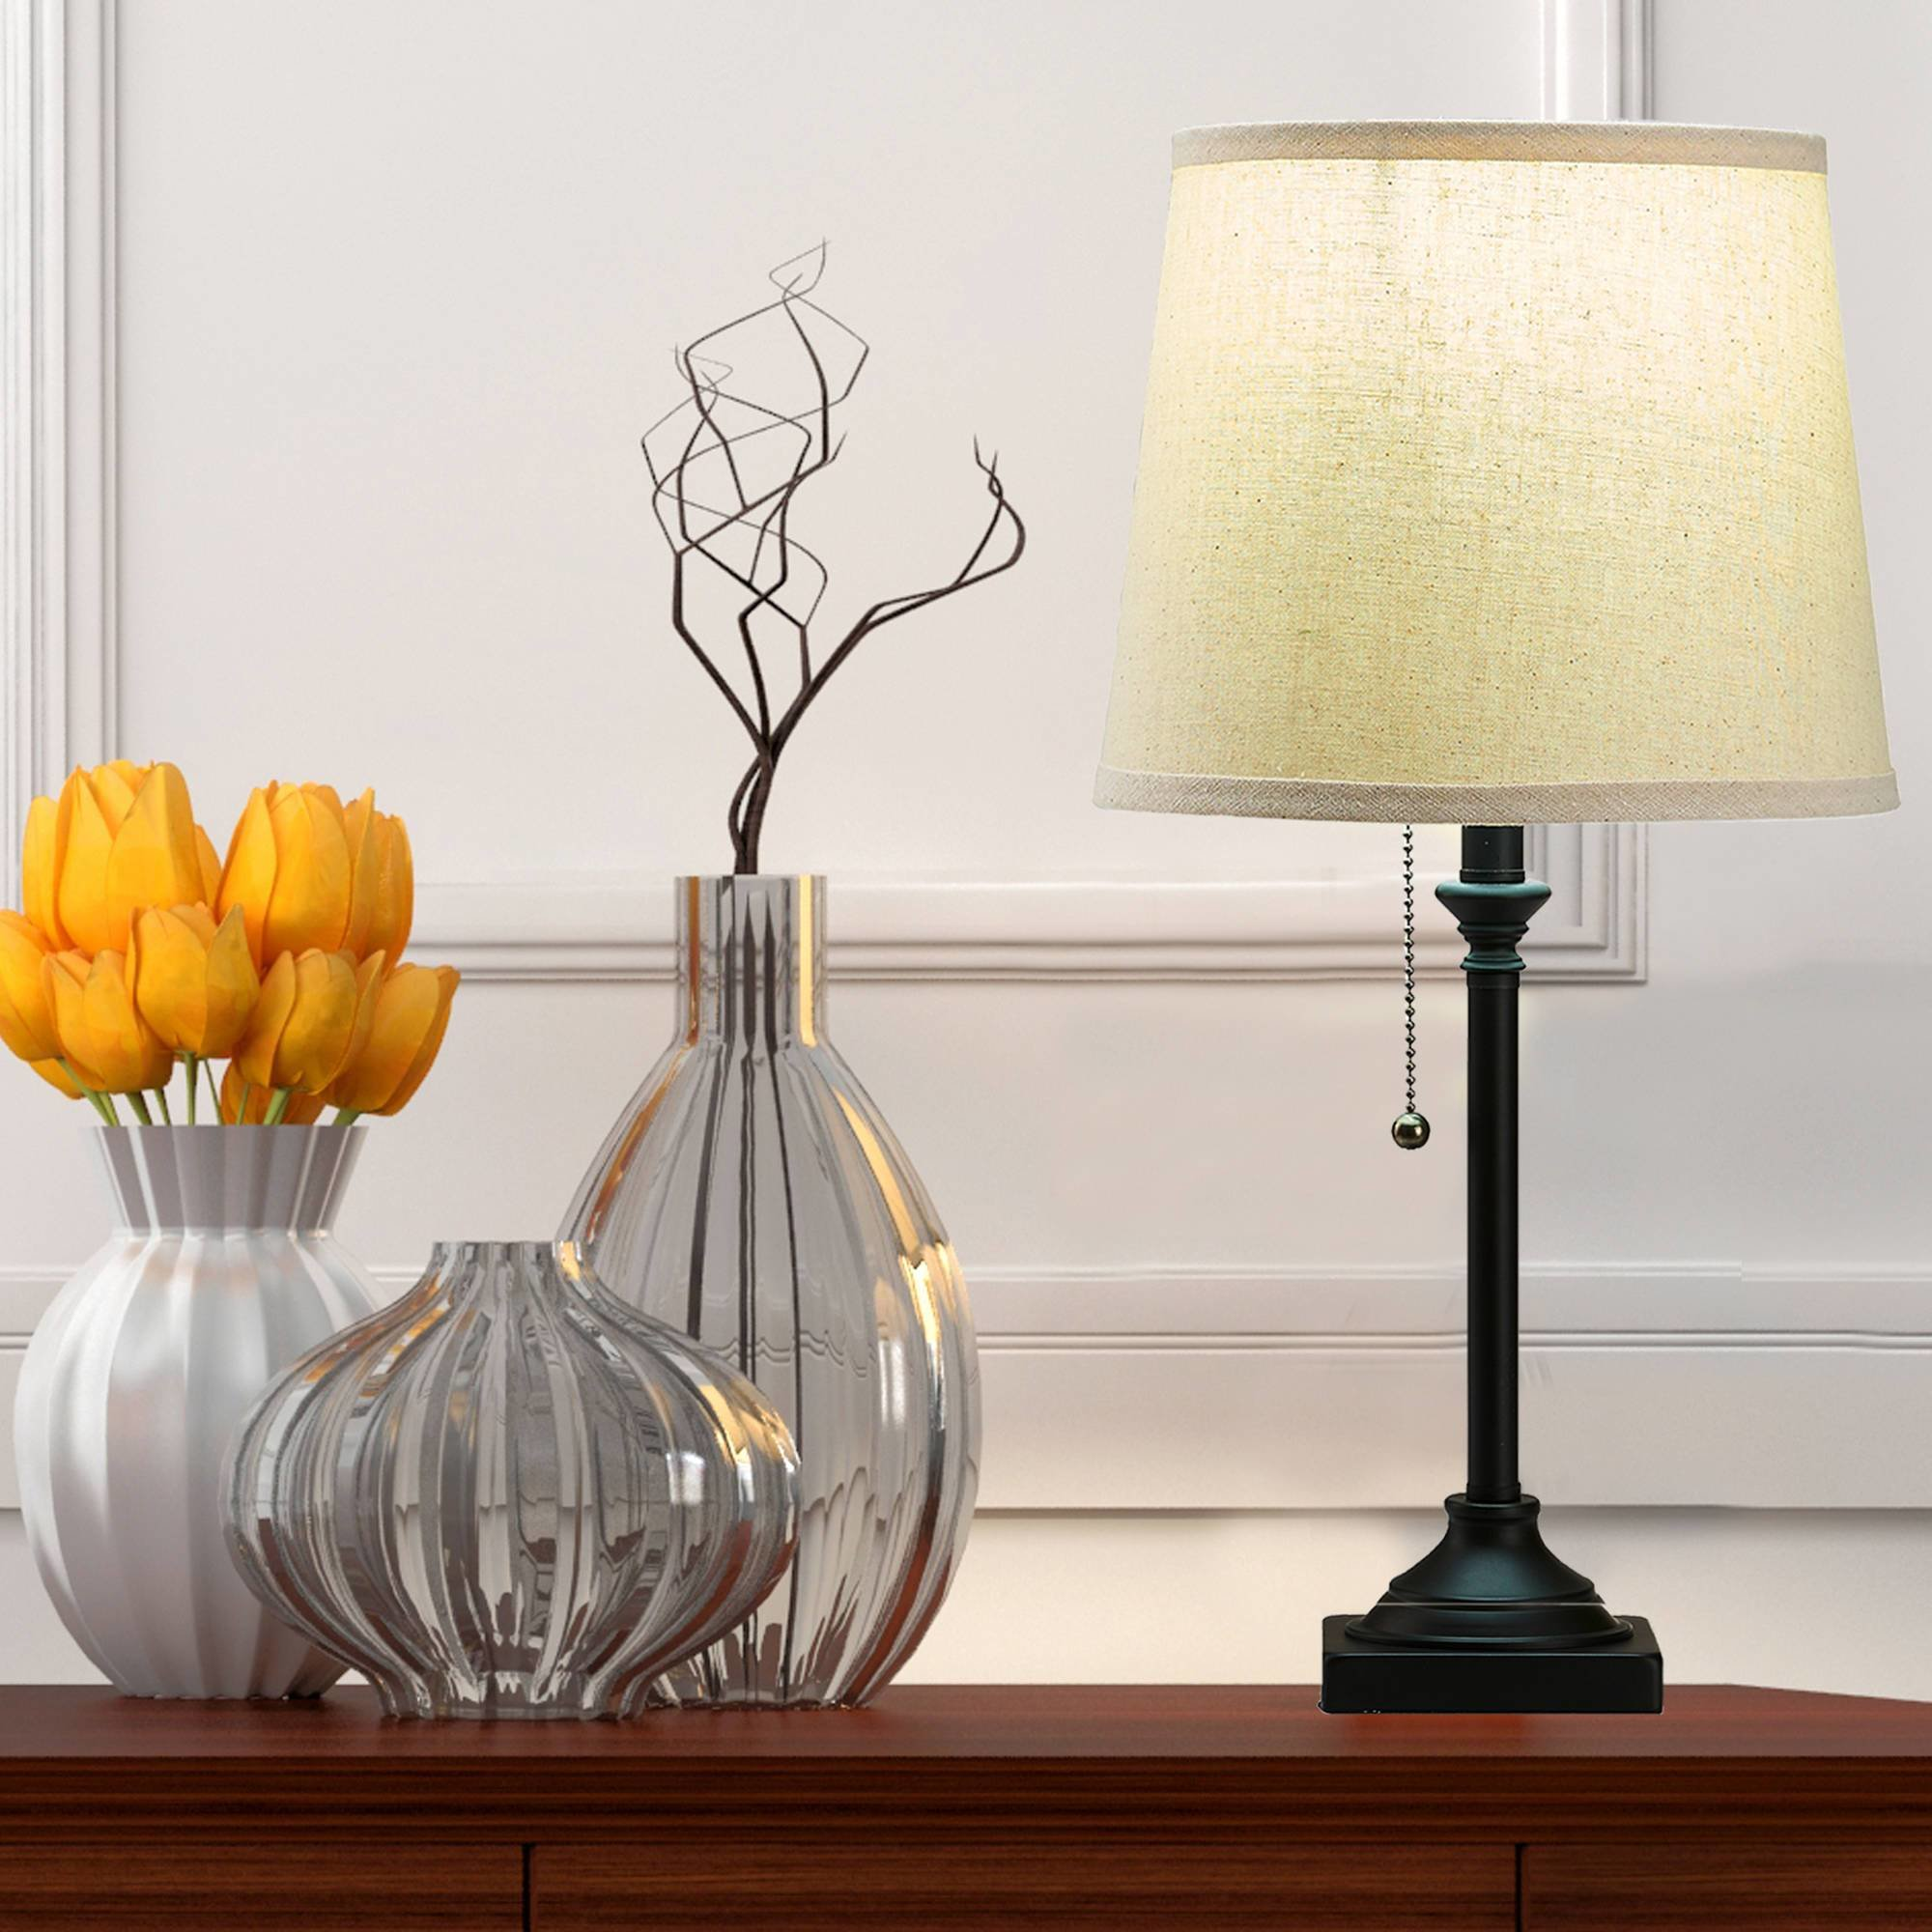 Best Bedroom Lamps For Nightstand Set Of 2 With Shade Pull Chain Switch Bronze Finish Ebay With Pictures